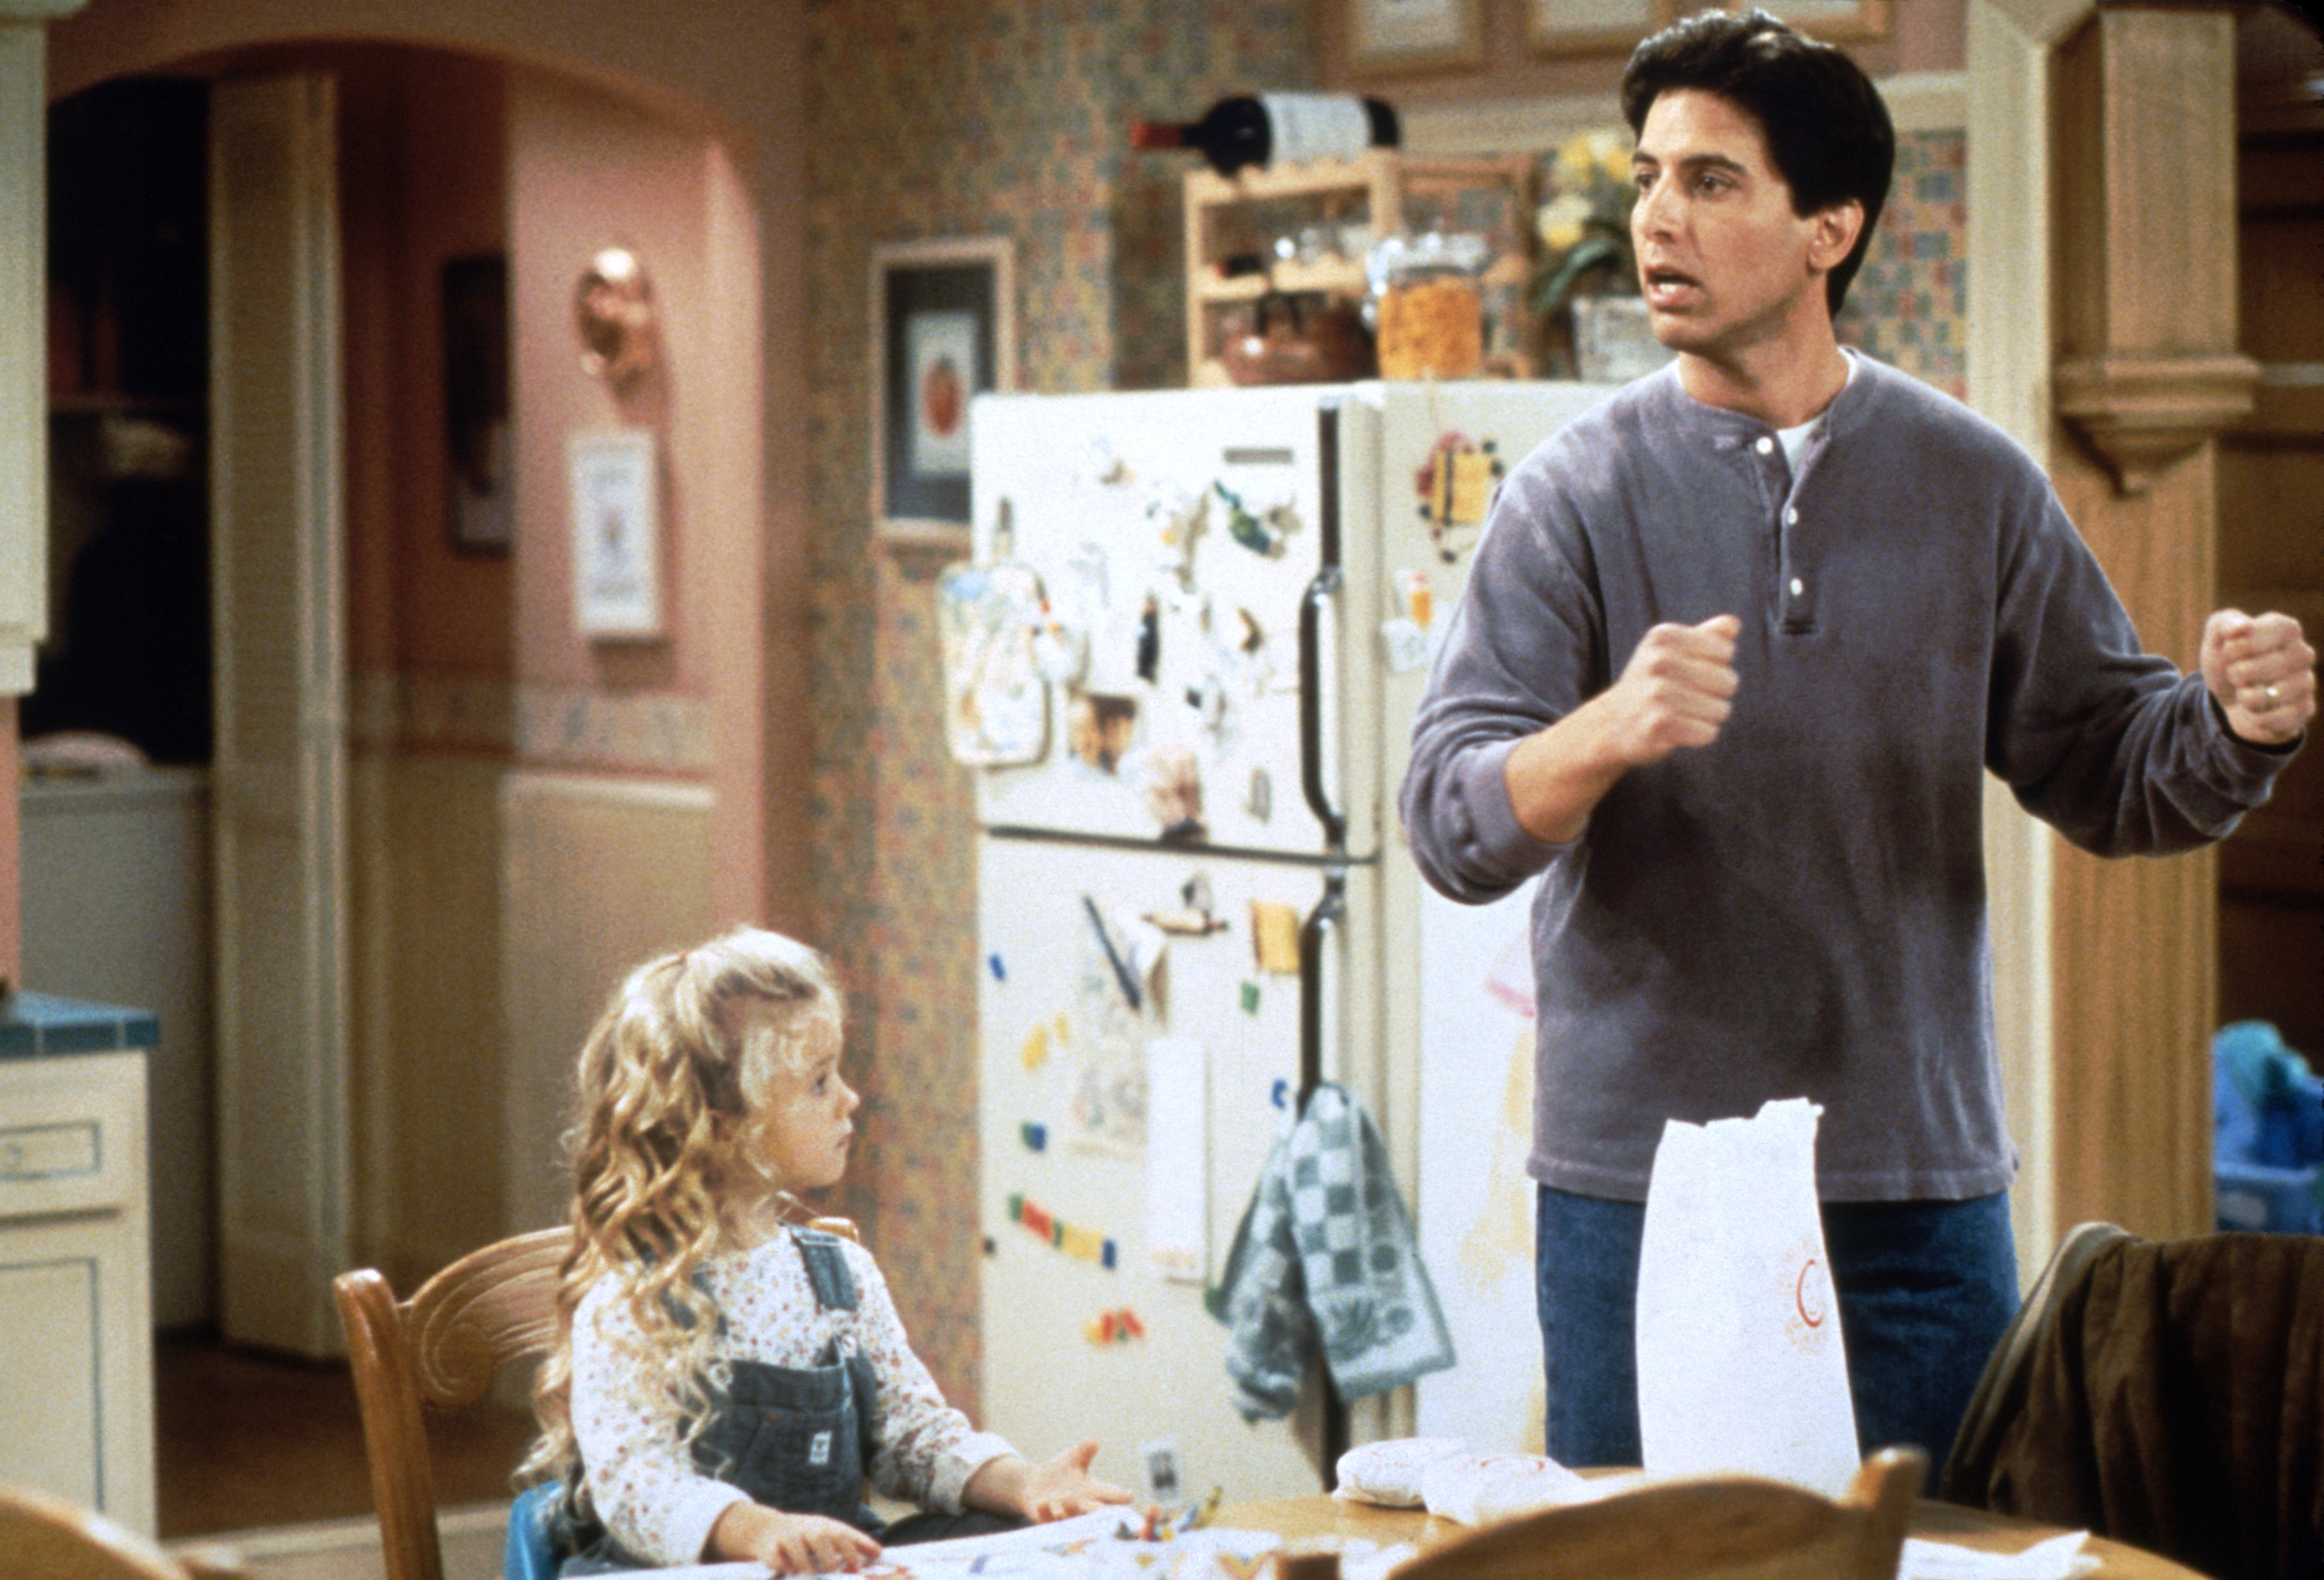 Ray Barone in the kitchen with his young daughter